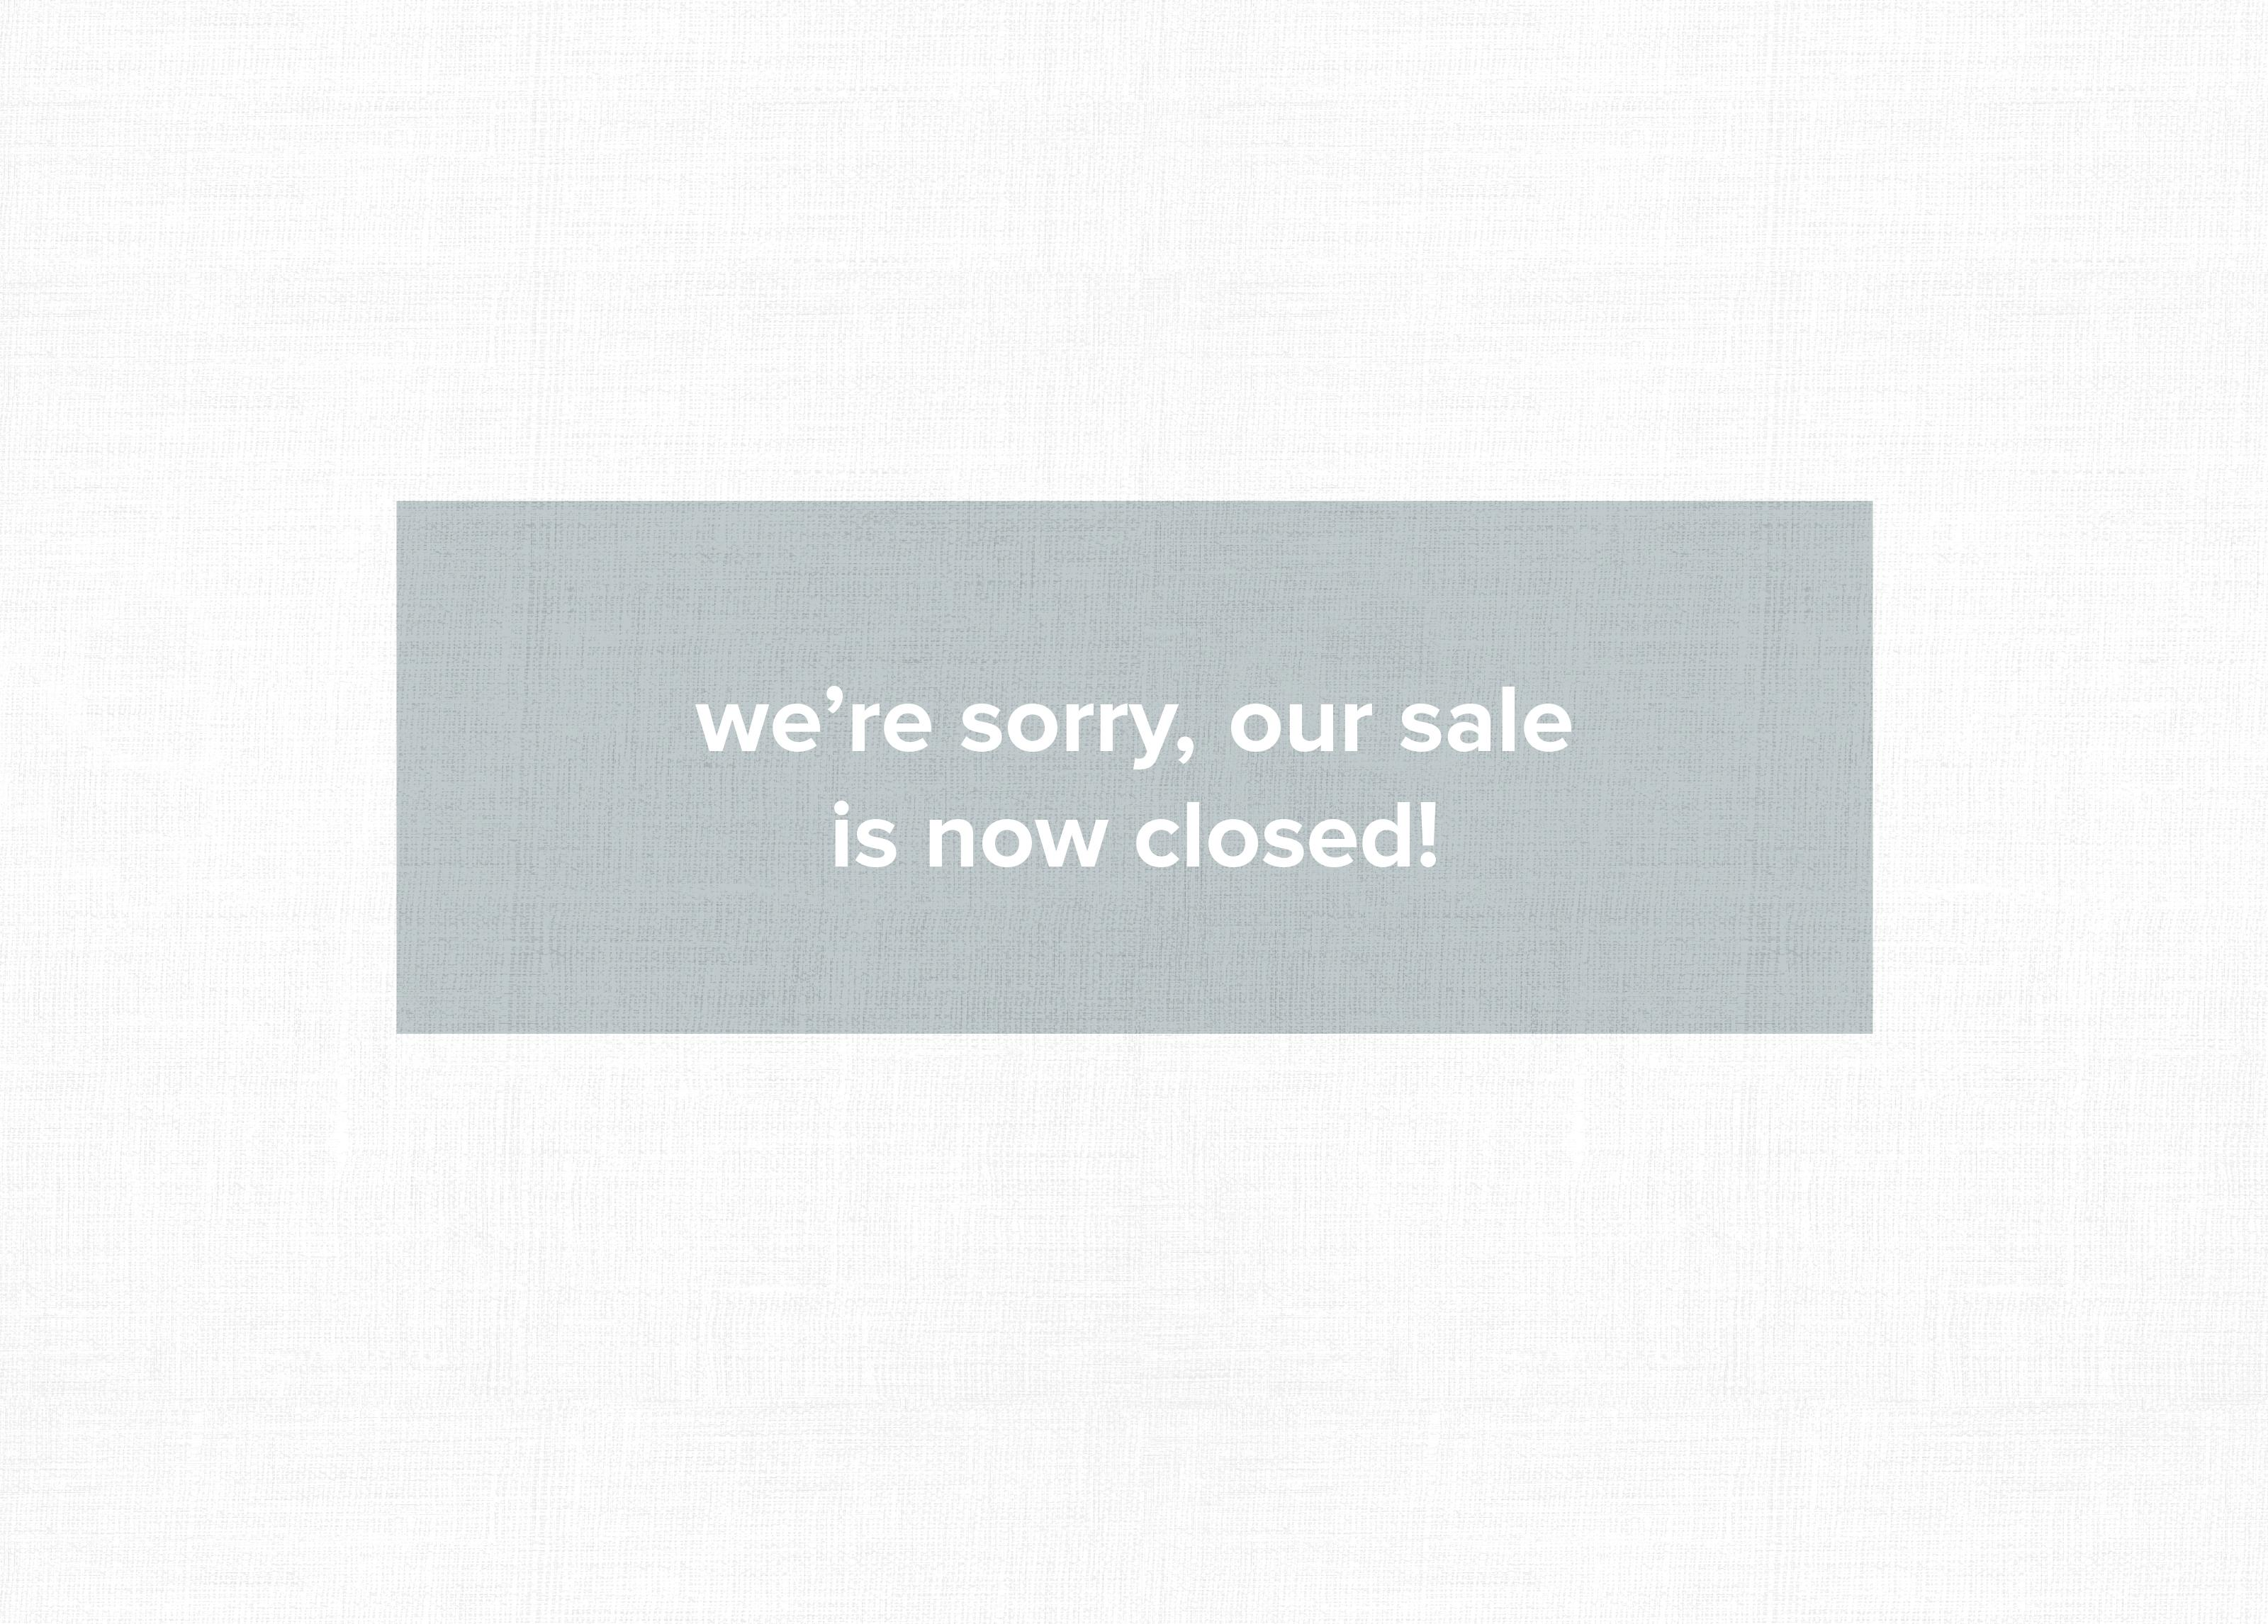 we're sorry, out sale has now closed